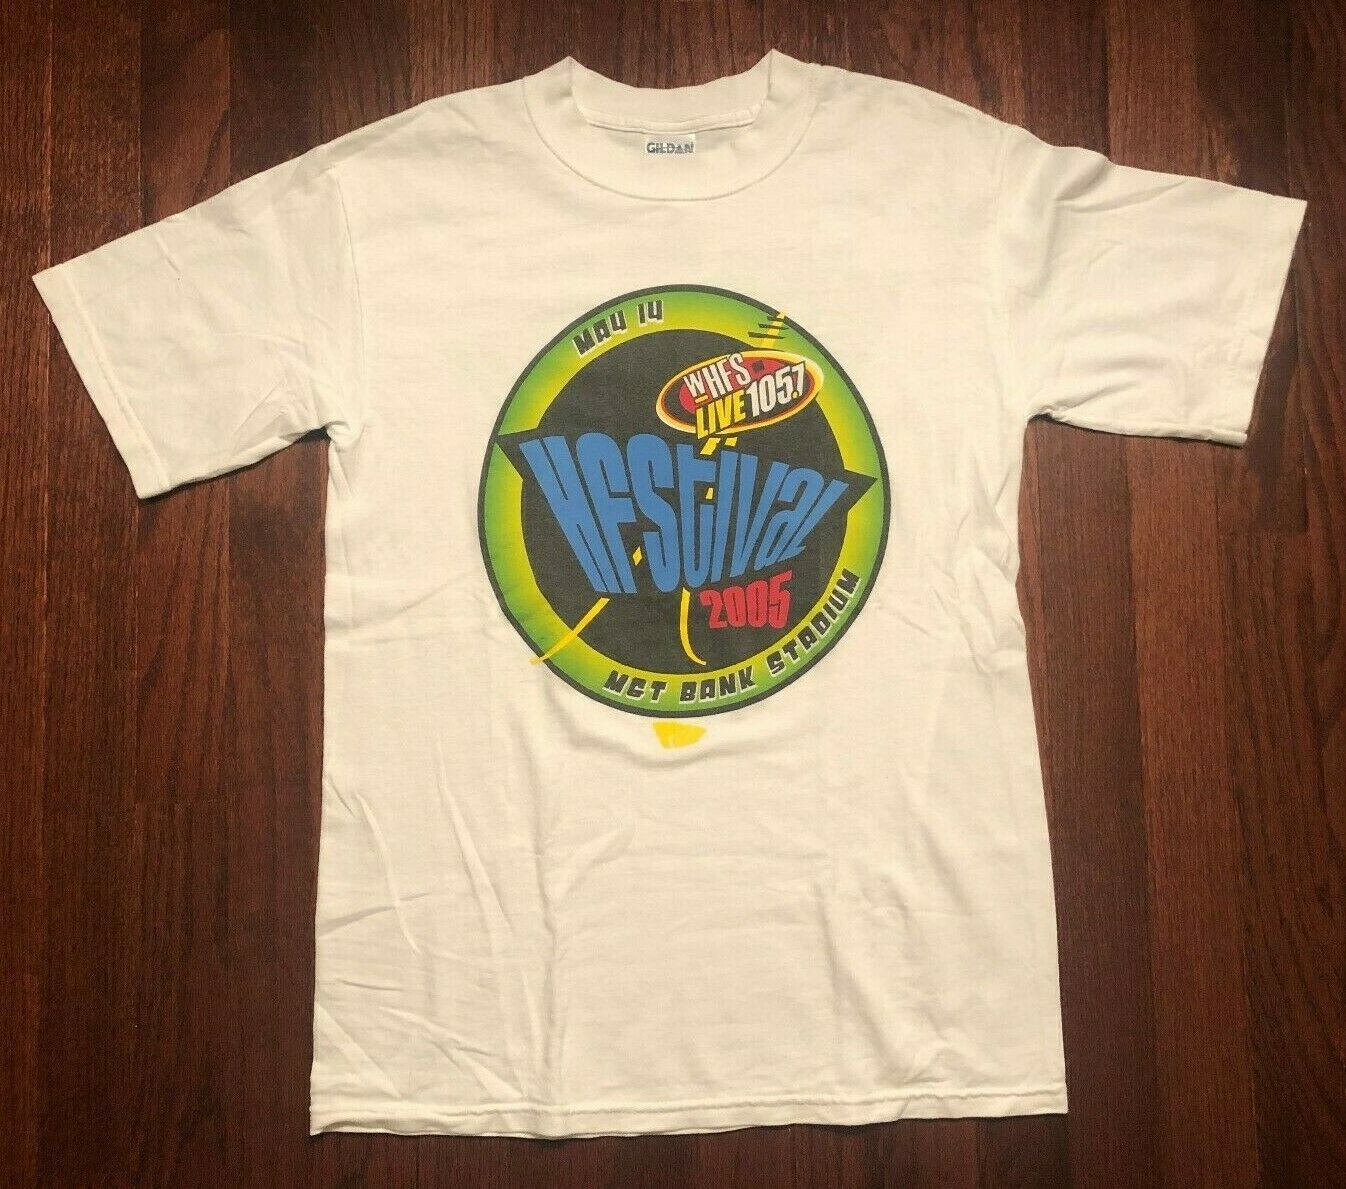 2005 WHFS HFSTIVAL CONCERT T SHIRT MENS SMALL WHITE FOO FIGHTERS COLDPLAY SUM 41 image